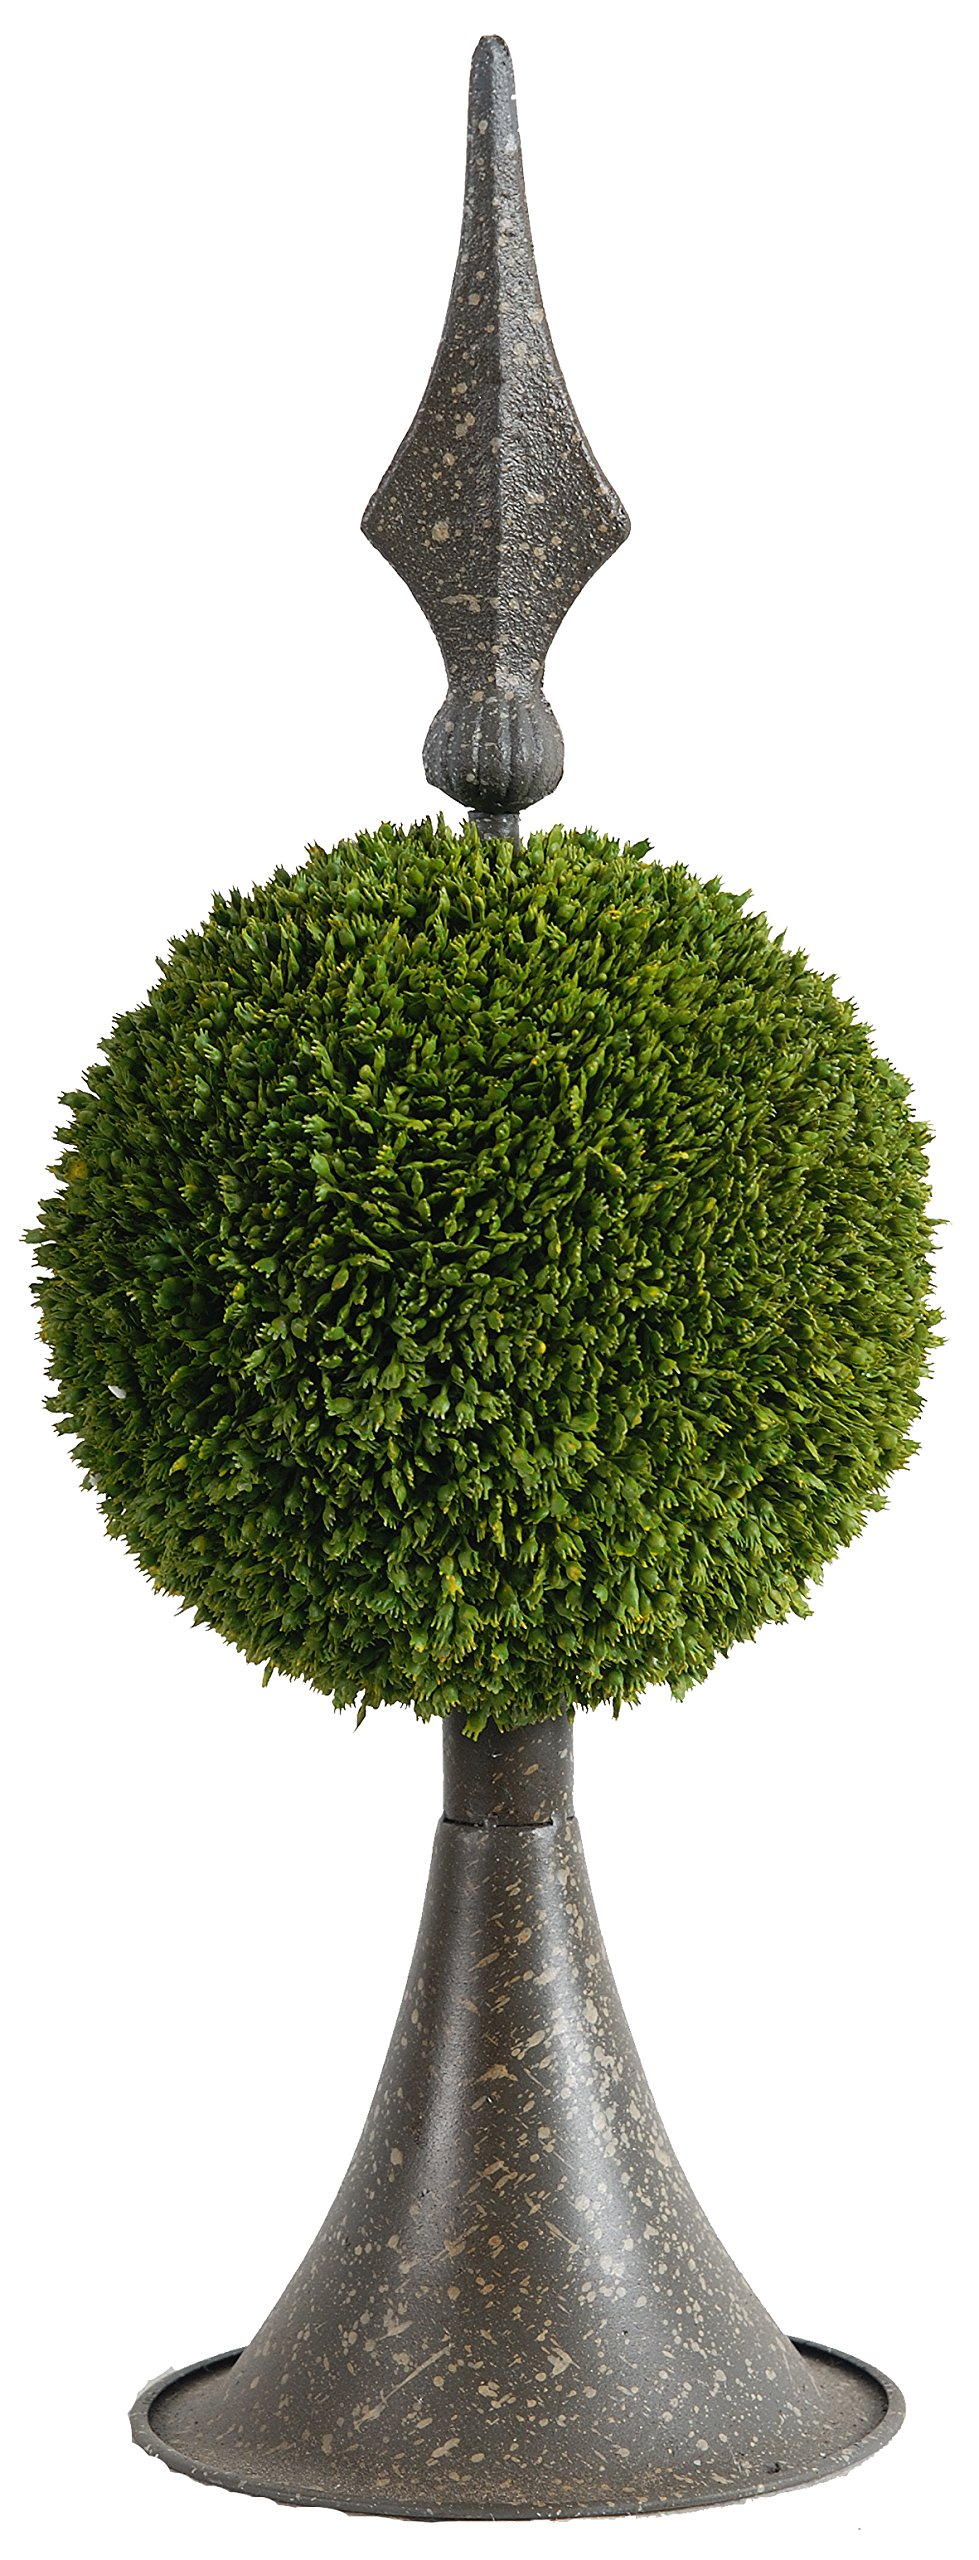 A&B Home 35413 Boxwood Ball Topiary With Metal Finial Stand, 7 by 17-Inch by A&B Home